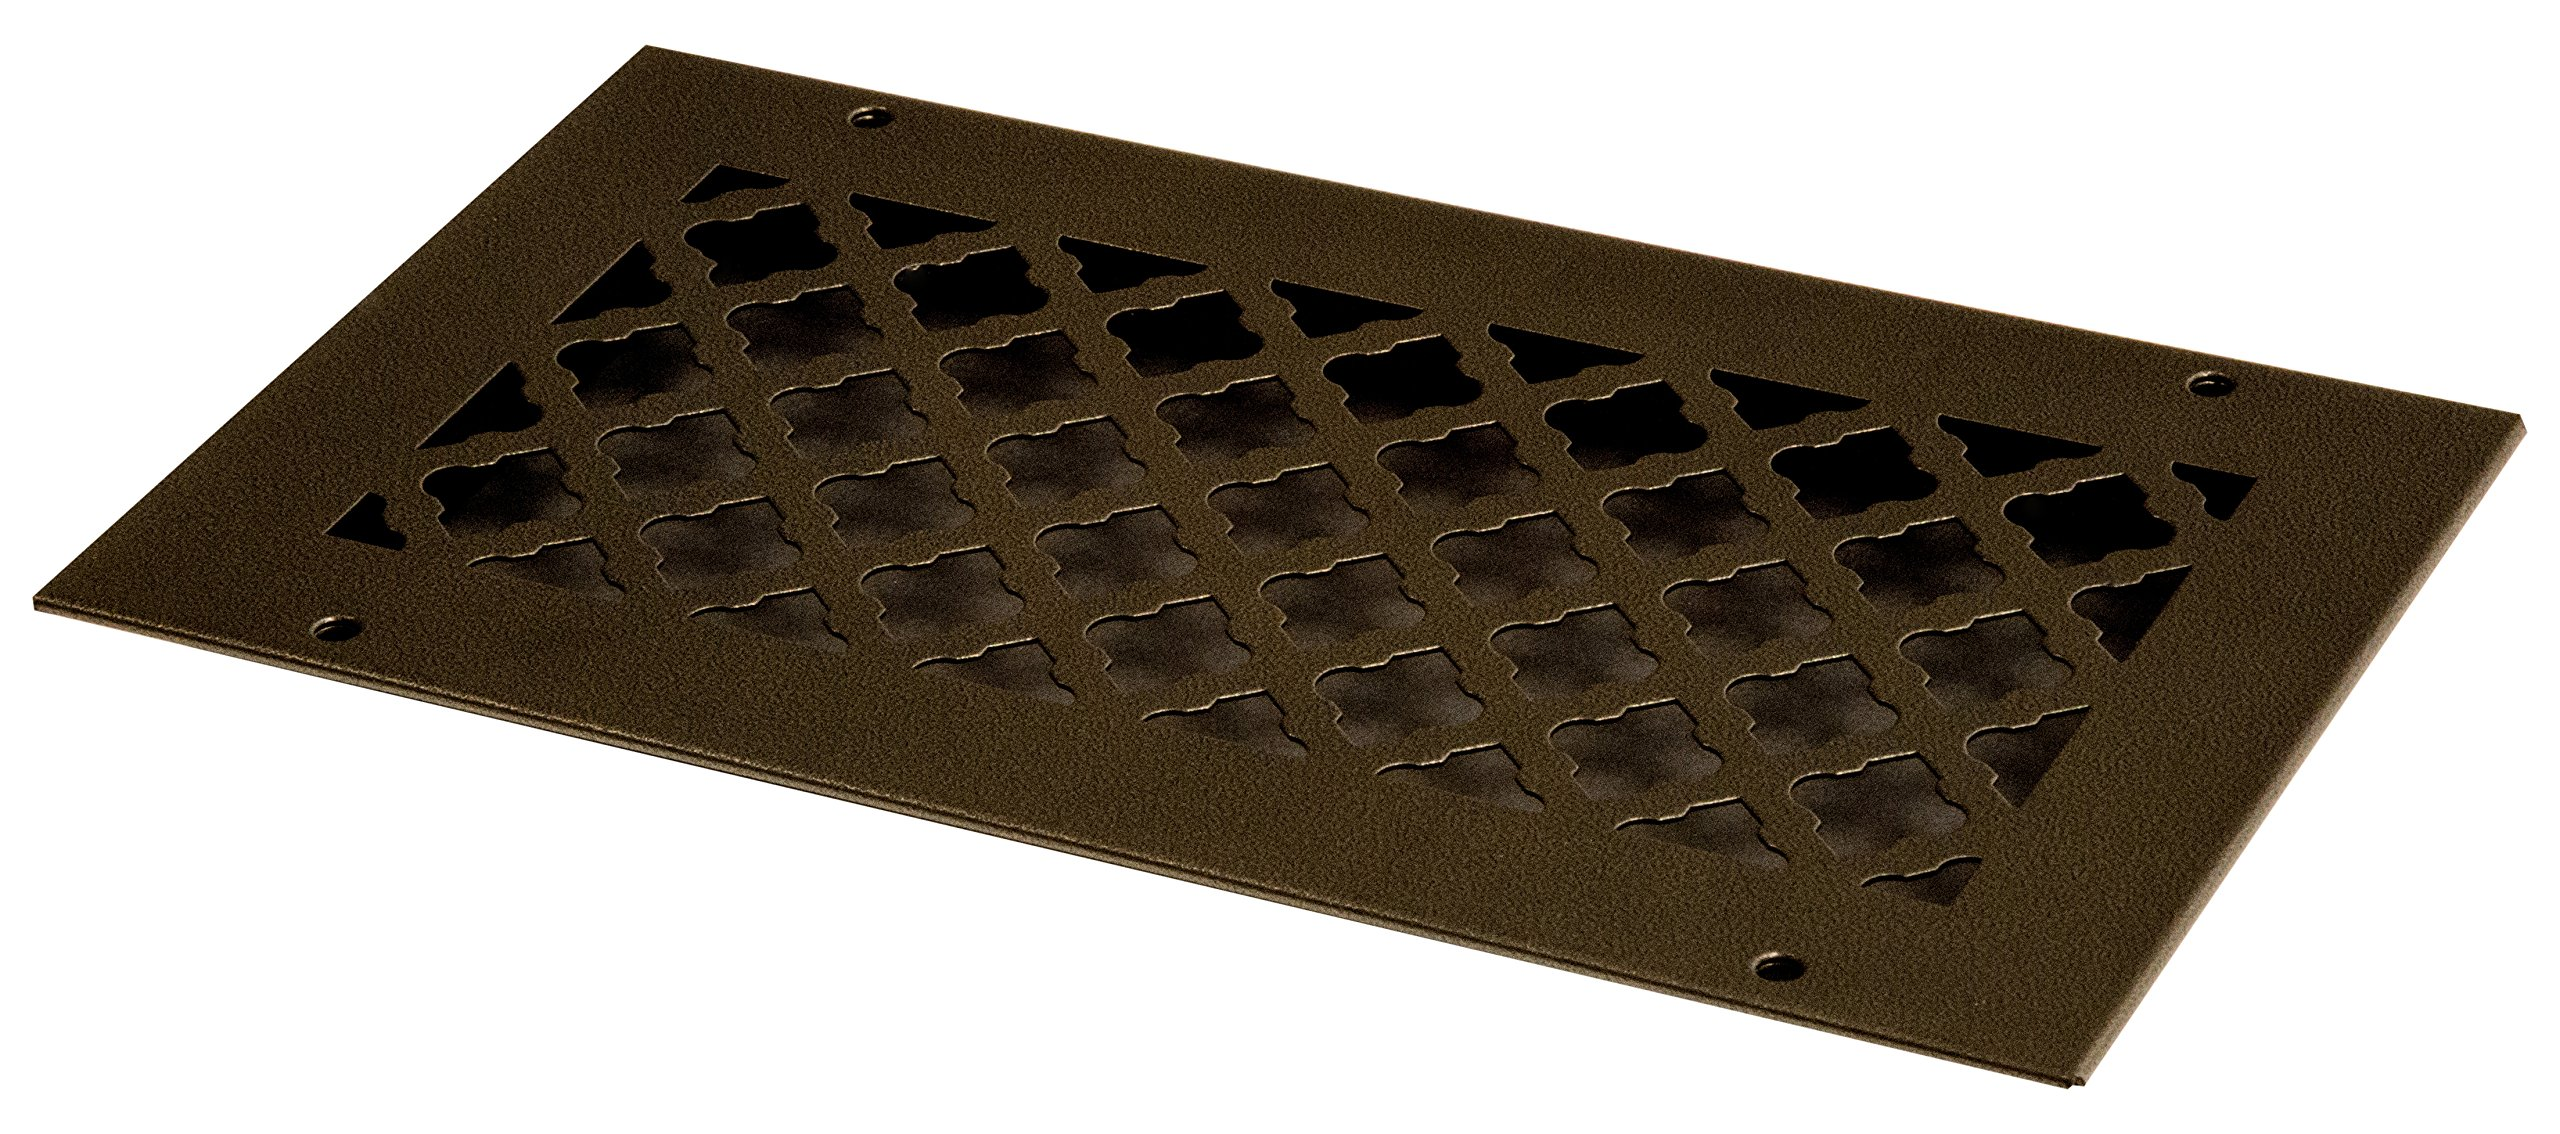 SteelCrest BTU12X6RORBH Bronze Series Designer Wall/Ceiling Vent Cover, with Mounting Screws, Oil Rubbed Bronze